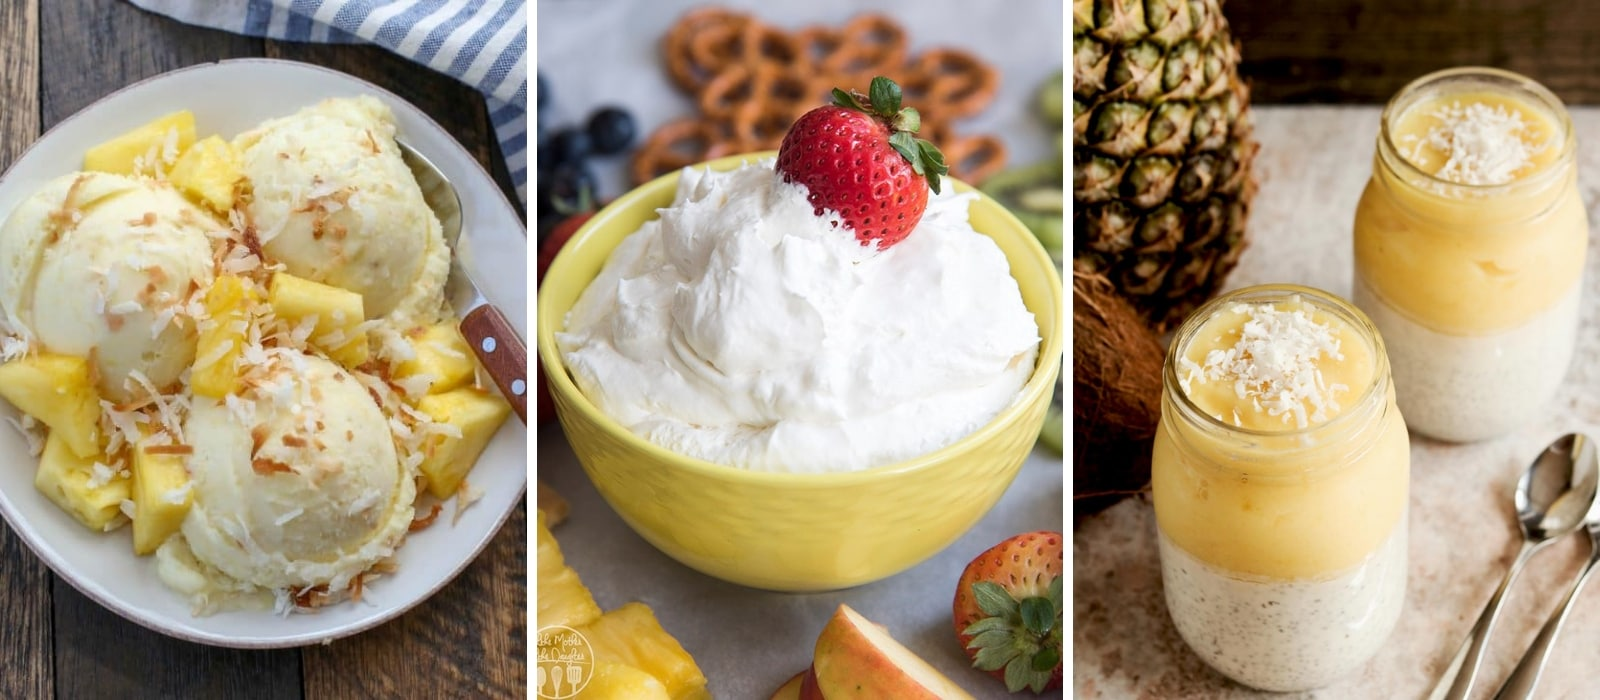 Best Pina Colada Inspired Recipe Roundup | If You Like Pina Coladas | Brunch Recipes | Pineapple and Cocount Recipes | Baking with Pineapple | Baking with Coconut | Pineapple Recipes | Coconut Recipes| #reciperoundup #pinacolada #cocktails